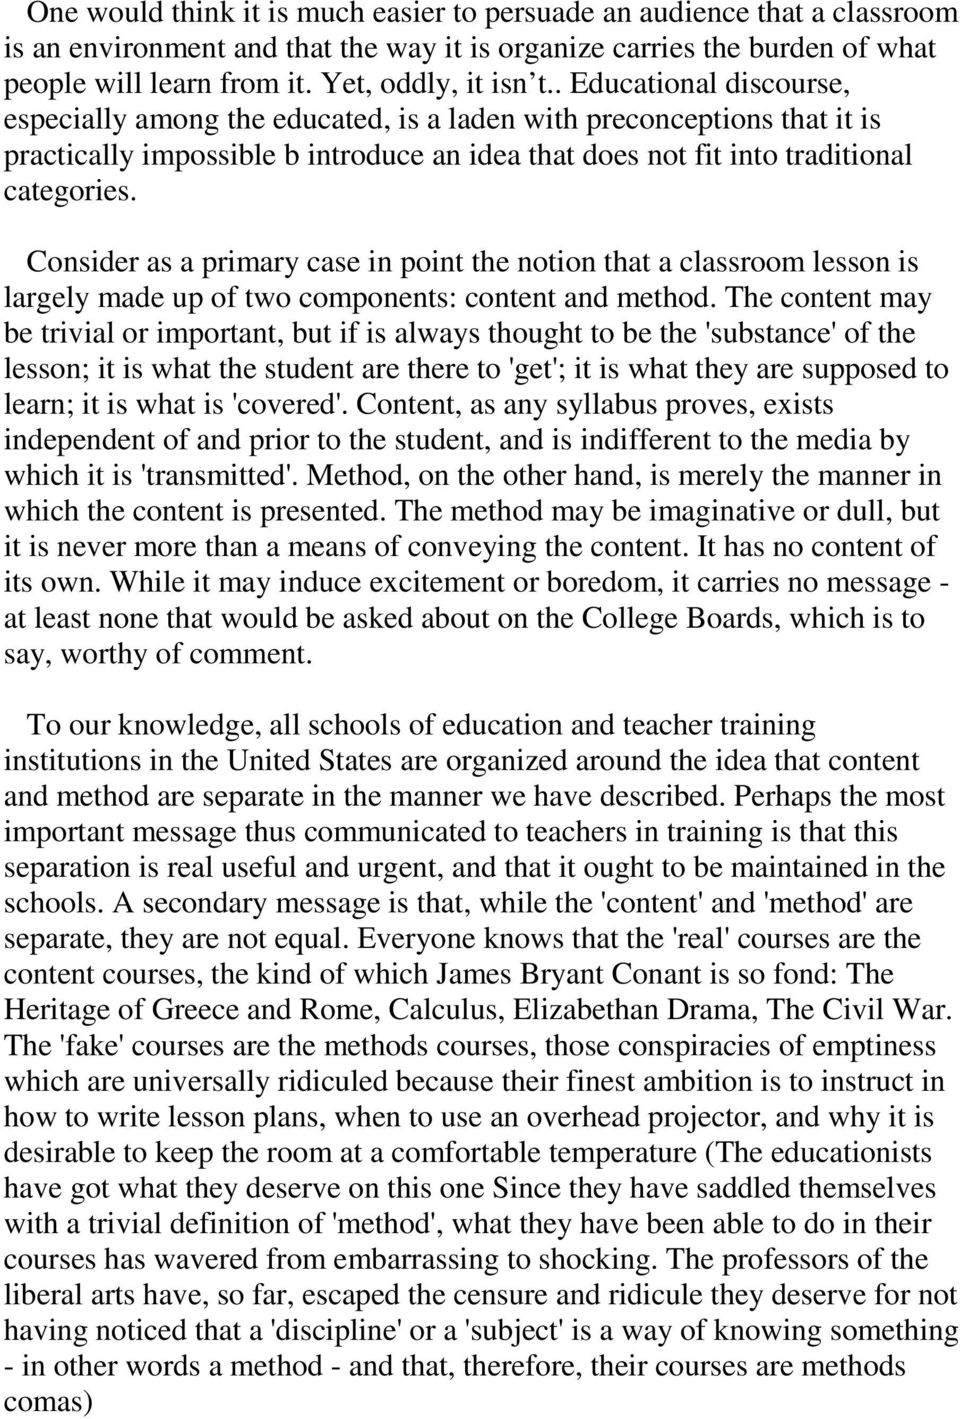 Consider as a primary case in point the notion that a classroom lesson is largely made up of two components: content and method.